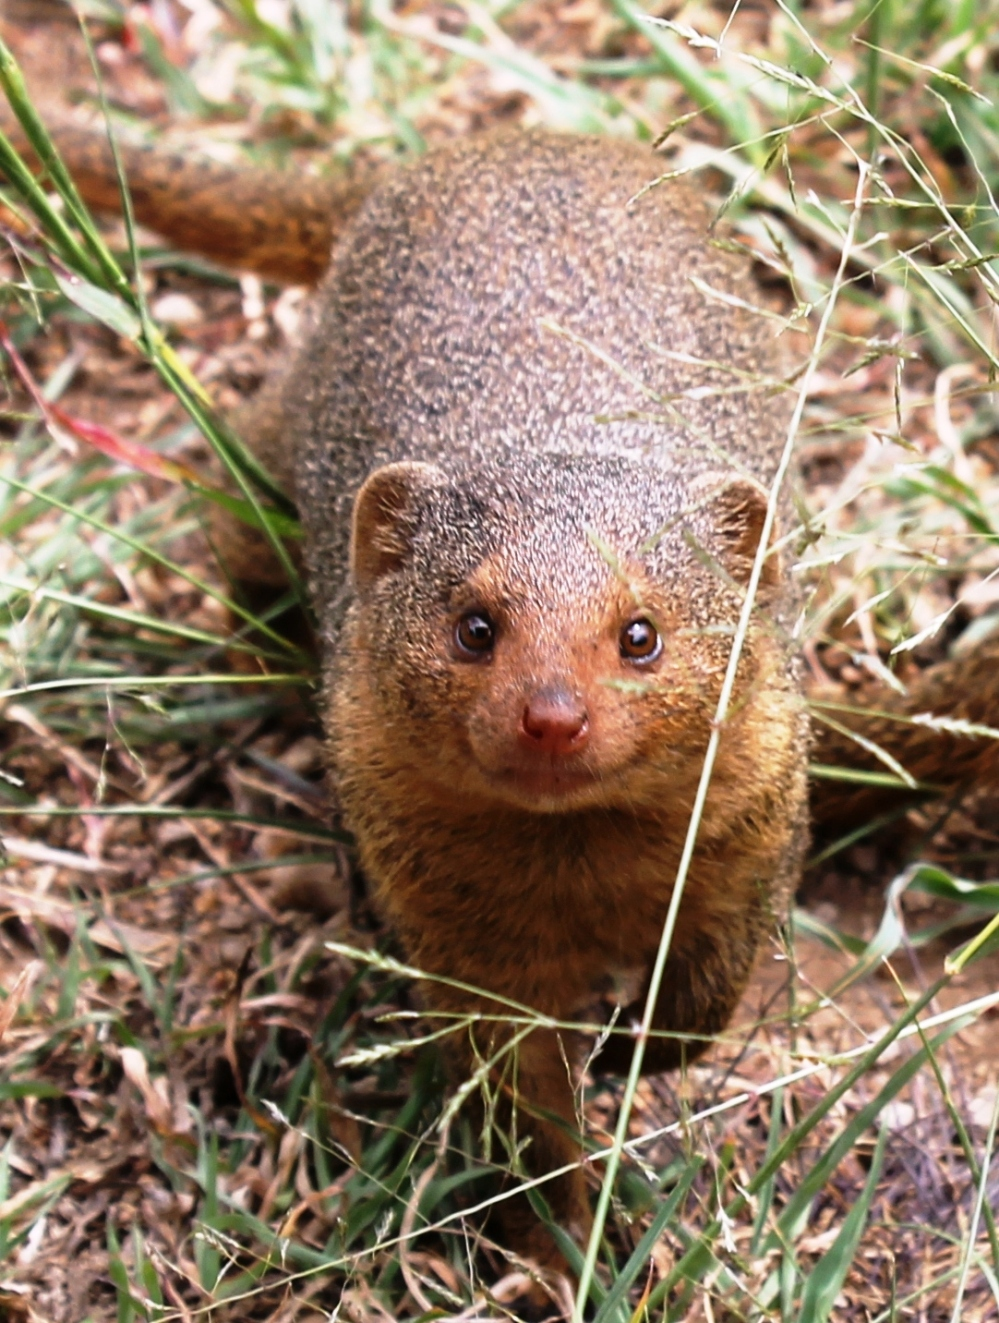 A close up meeting with one of my favourite animals ever - a mongoose